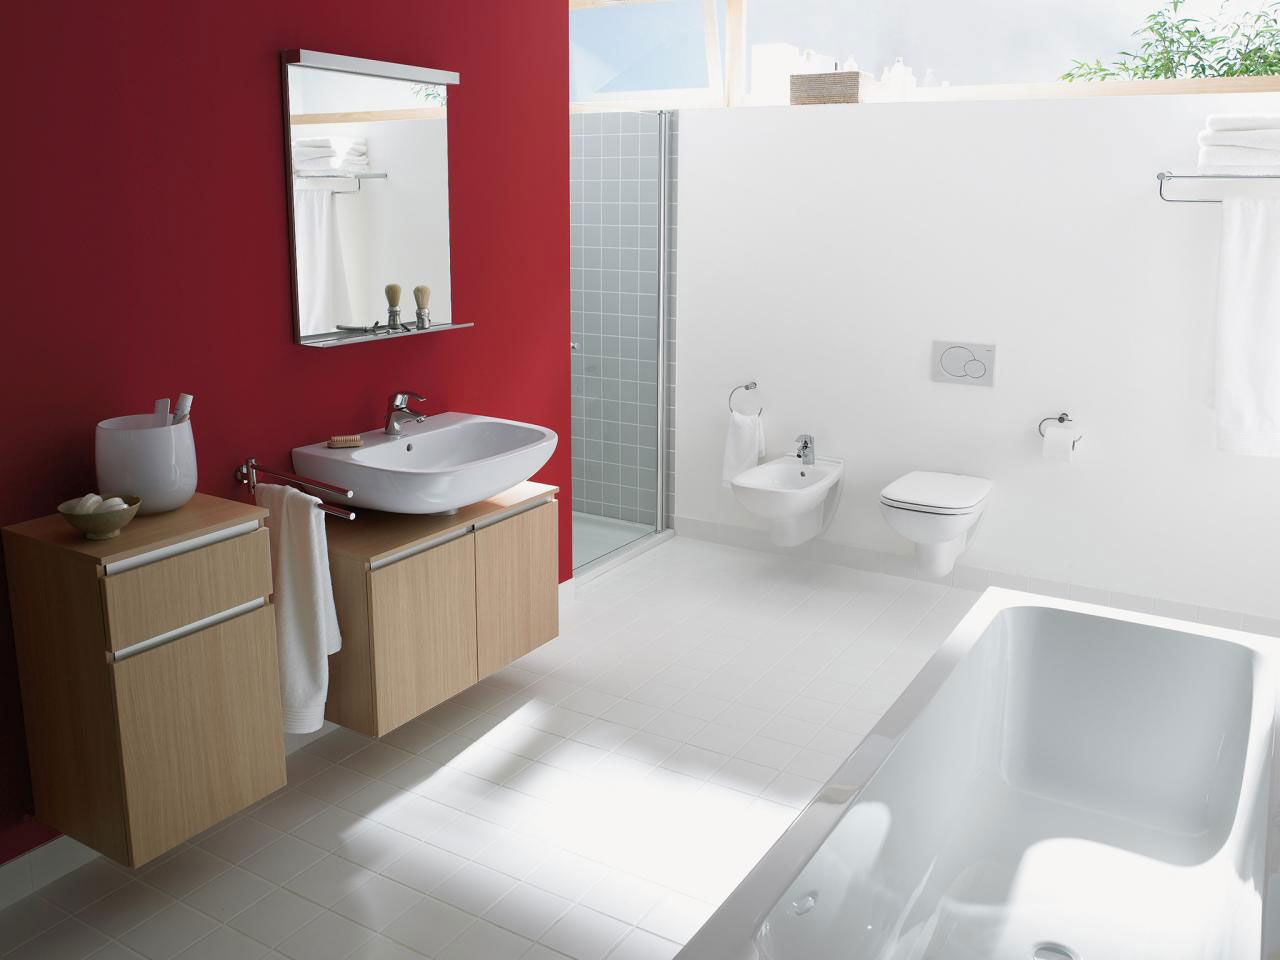 Dazzling Red And White Accent Wall Color With Vanity Sink Coupled By ...